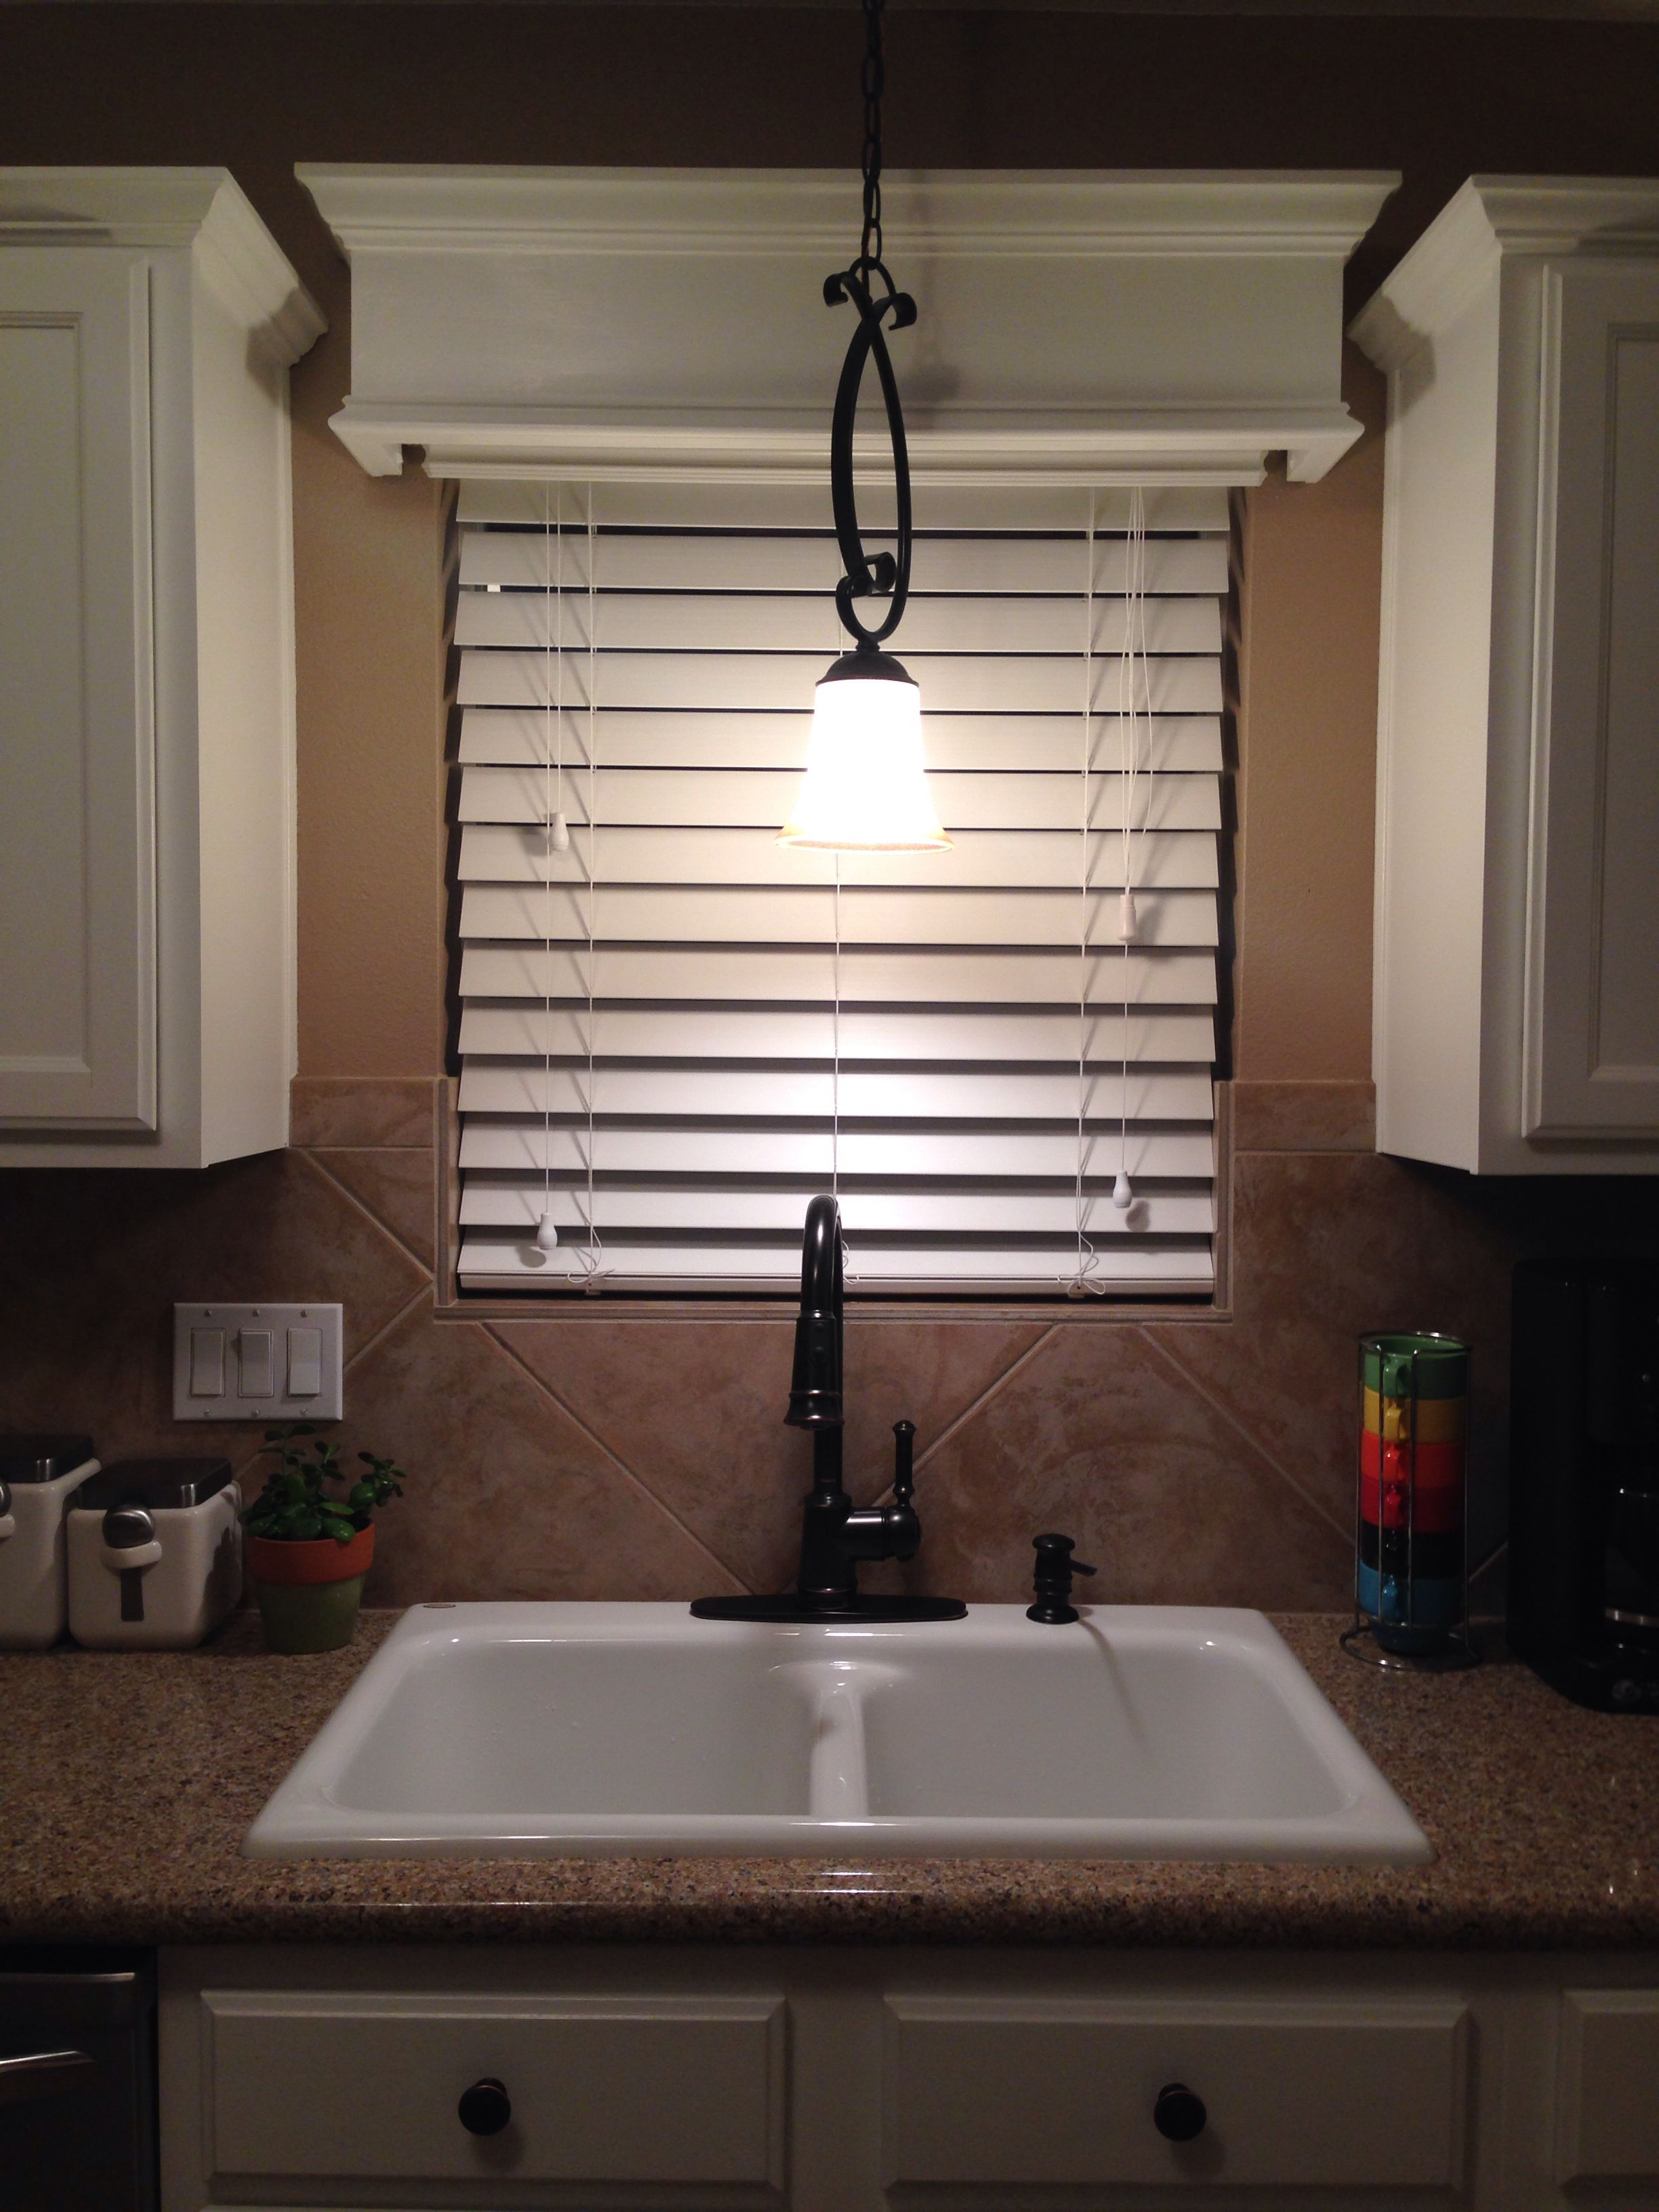 Diy Wood Valance Super Easy Diy Wooden Cornice Board With Crown Molding In Kitchen